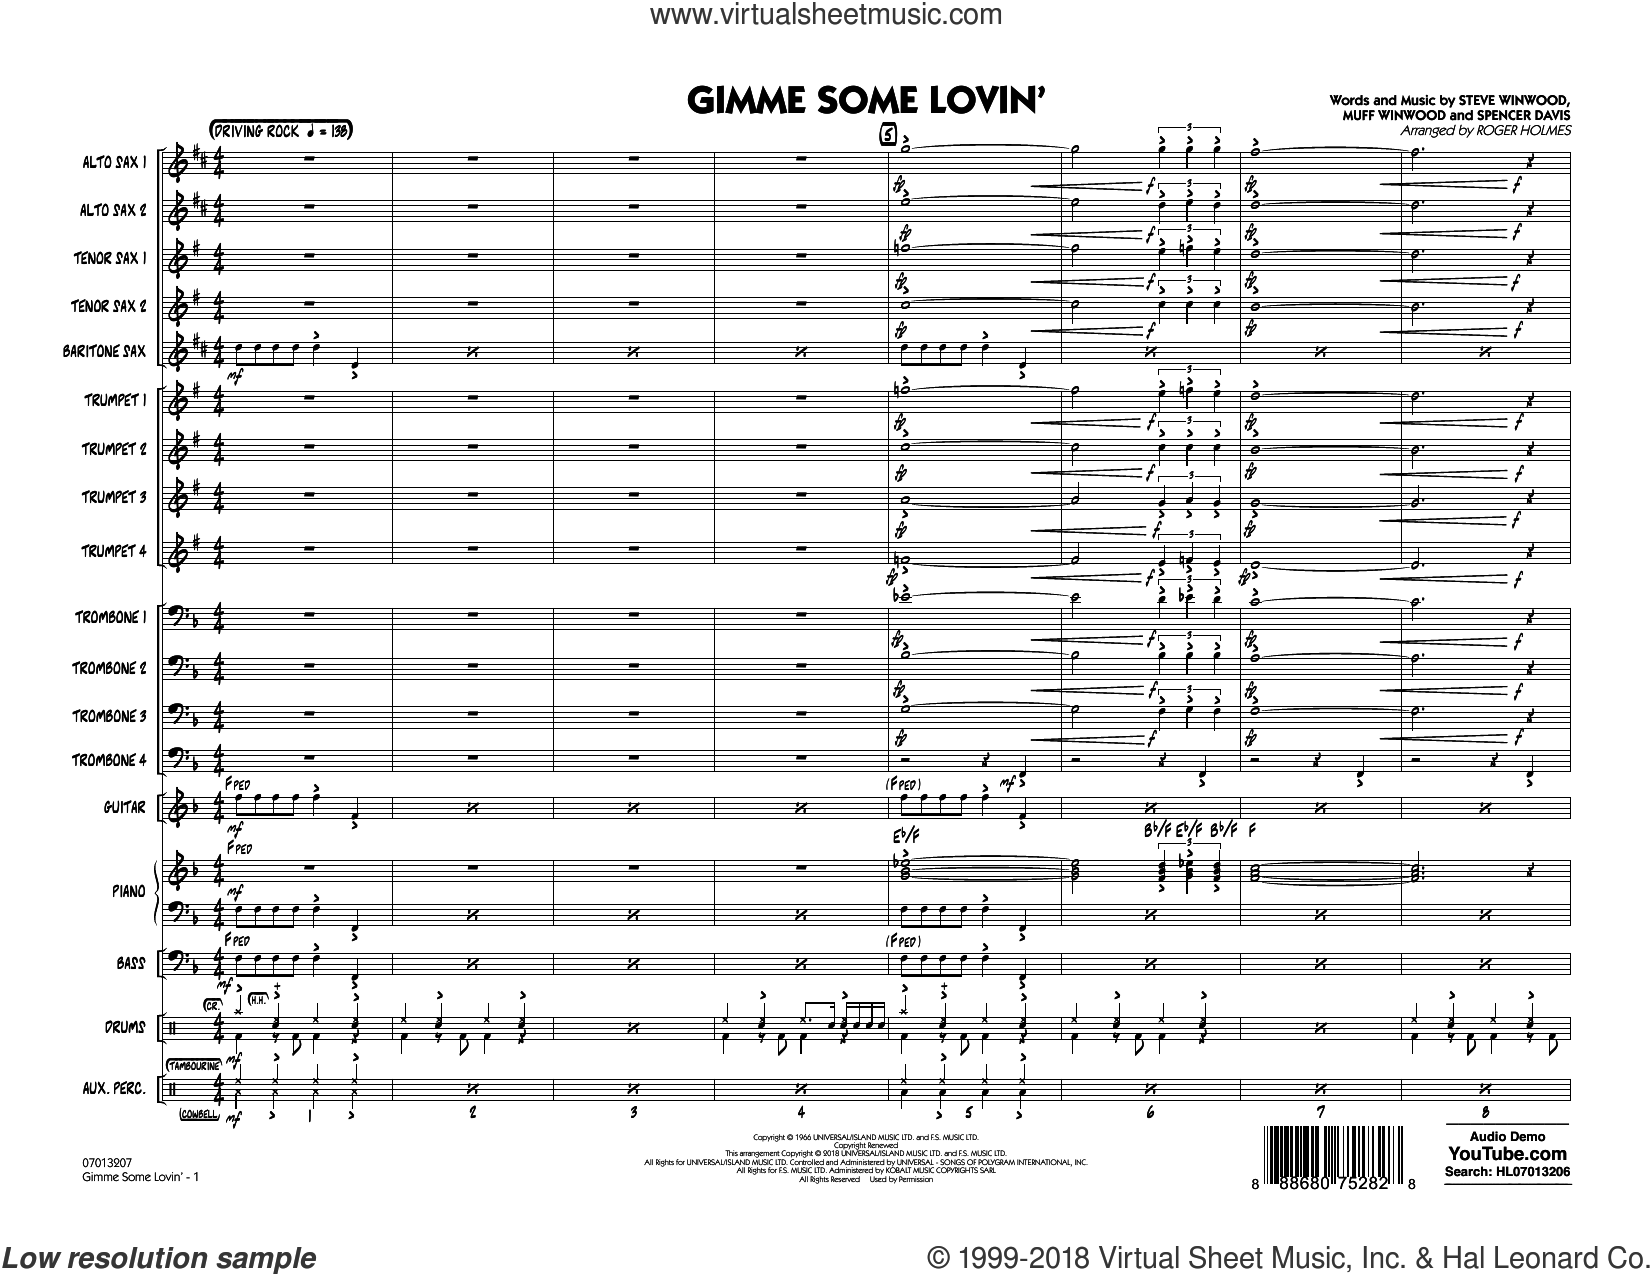 Gimme Some Lovin' (COMPLETE) sheet music for jazz band by Roger Holmes, Muff Winwood, Spencer Davis, Steve Winwood and The Spencer Davis Group, intermediate skill level